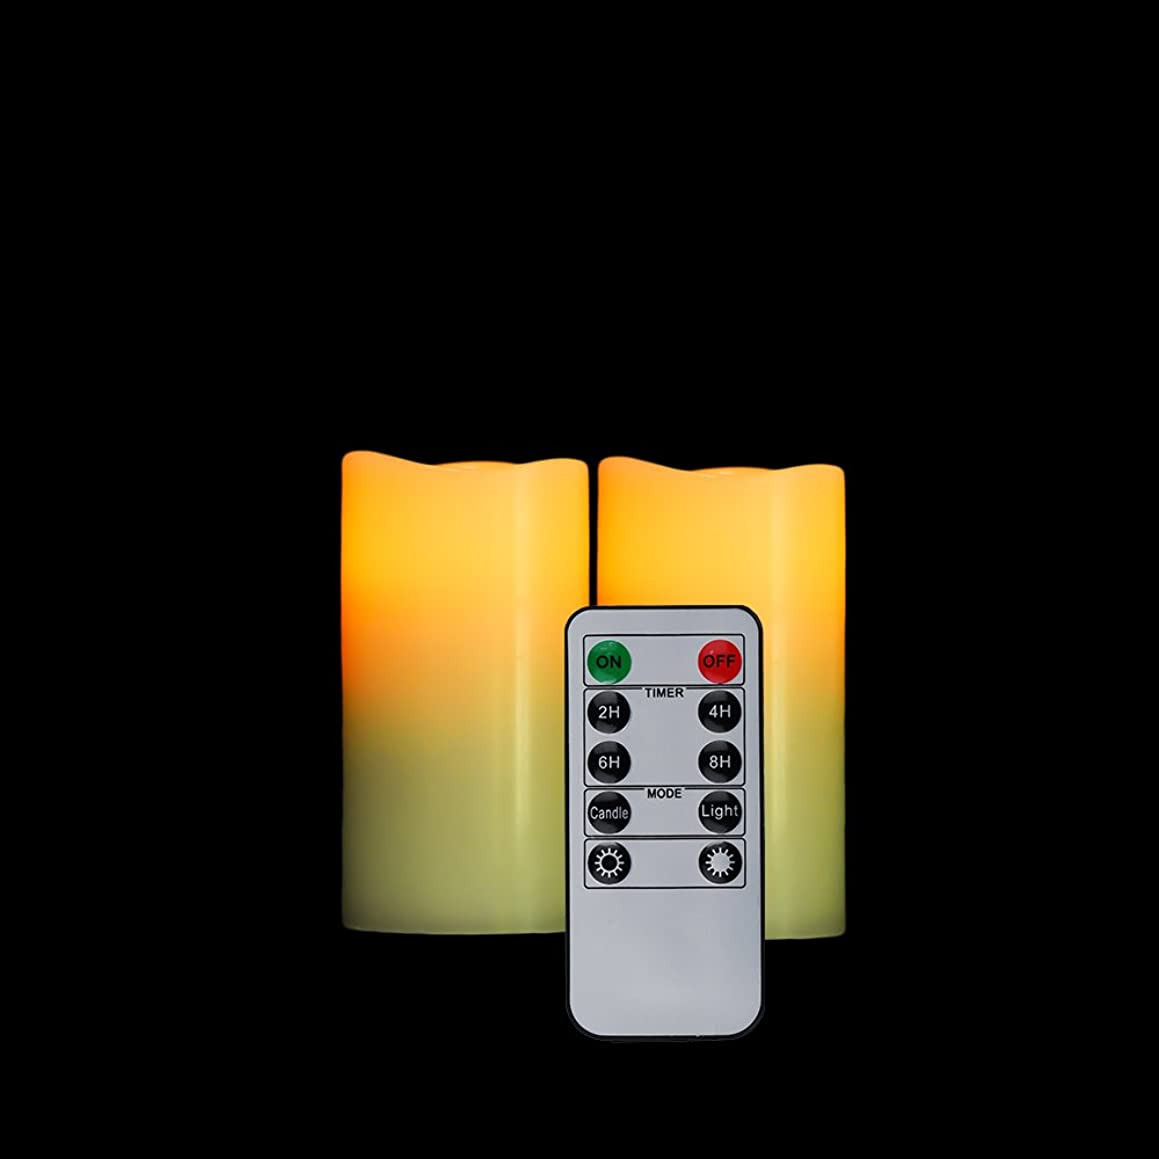 HIFROM Flameless Candle Battery Operated LED Flickering Real Wax Pillar Candle Auto-Off Timer 10 Key Remote Control - 2 Pack (H 4